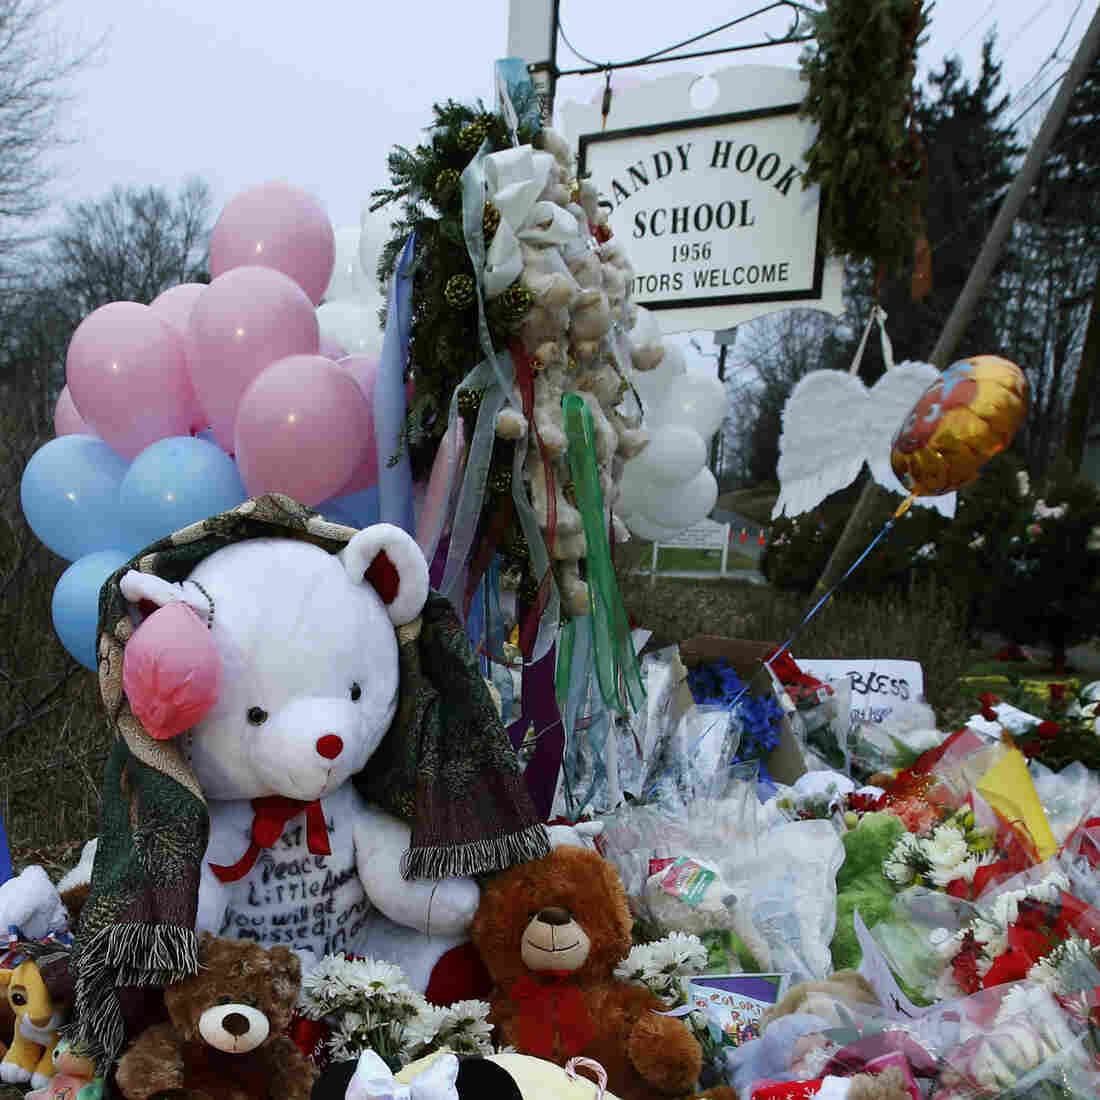 A makeshift memorial was set up near the entrance to the Sandy Hook Elementary School on Sunday.